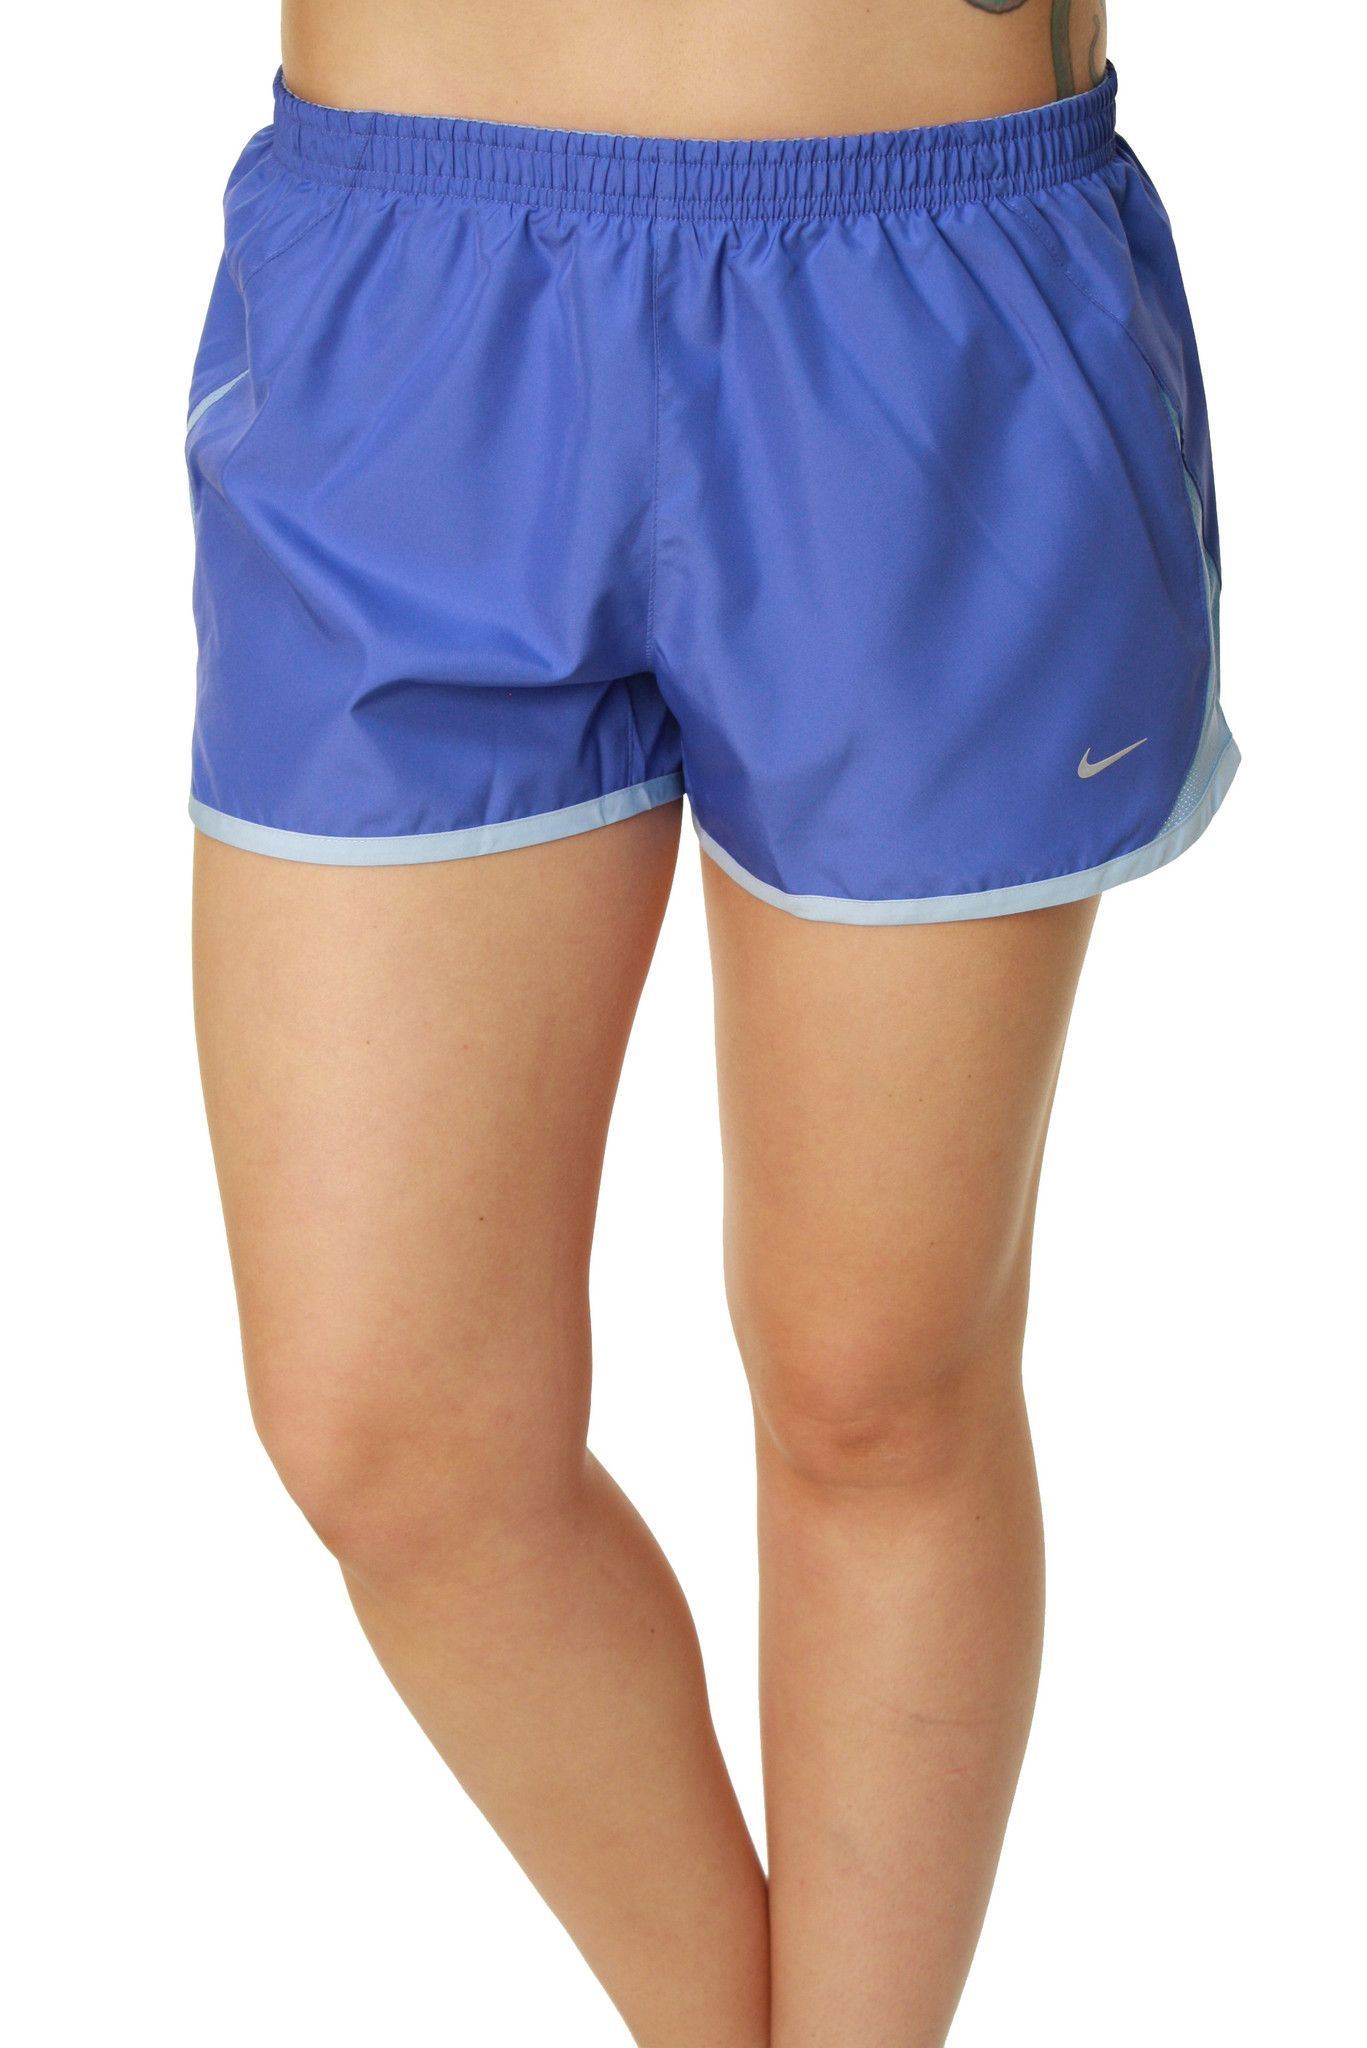 cd1539fd2 Nike Women's Built-In Brief 5K Running Shorts | Nike Women | Nike ...